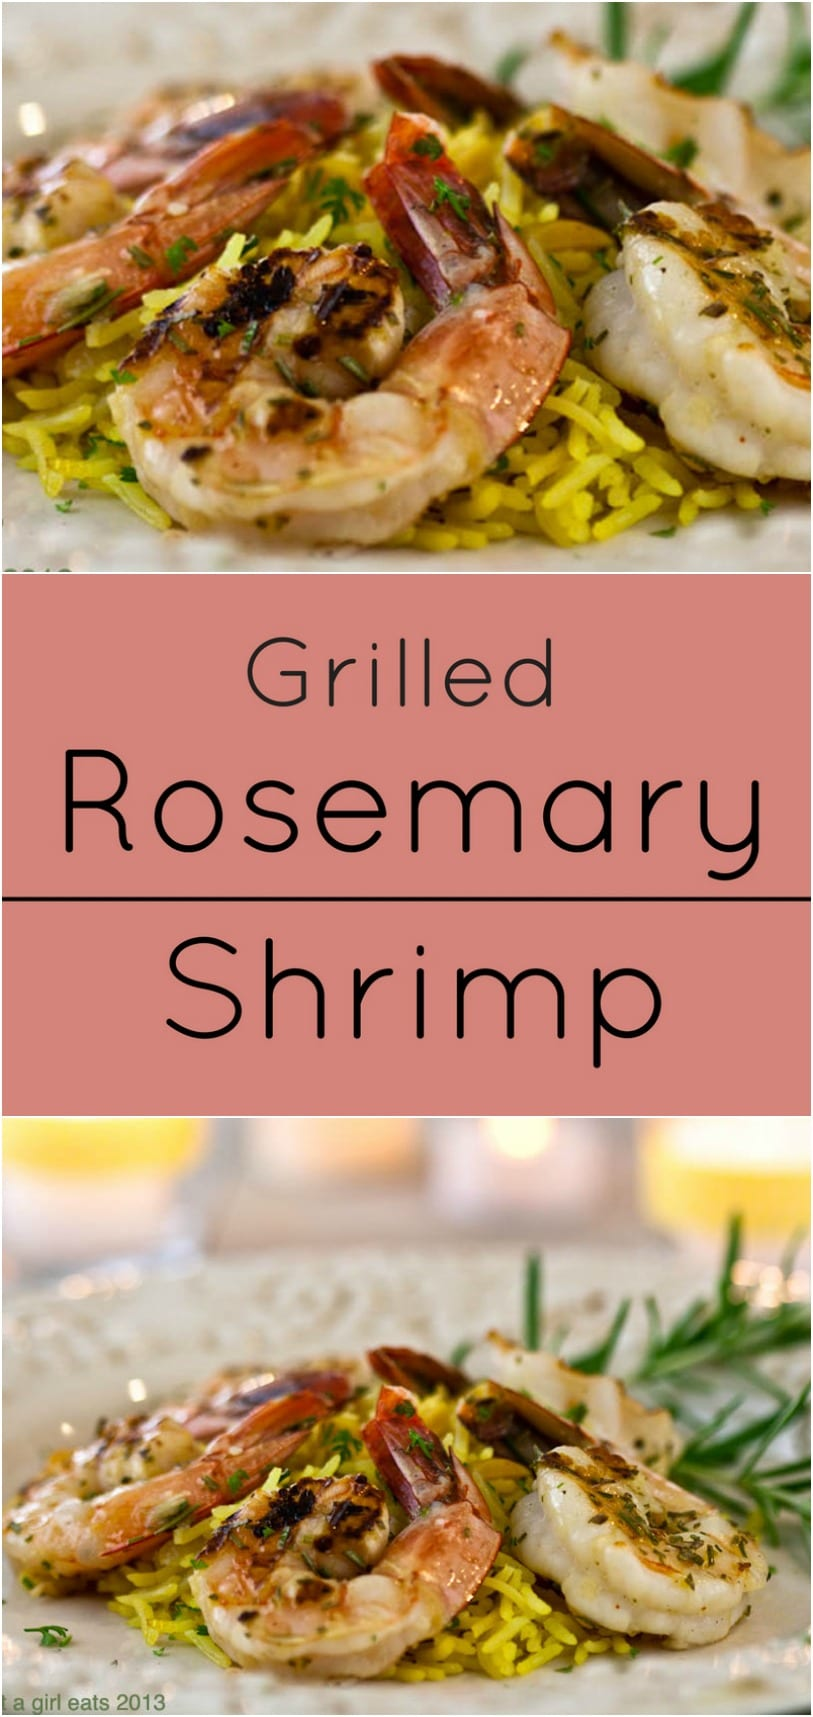 Grilled Rosemary Shrimp is ready in under 30 minutes! Low carb, Paleo and Whole30 Compliant.